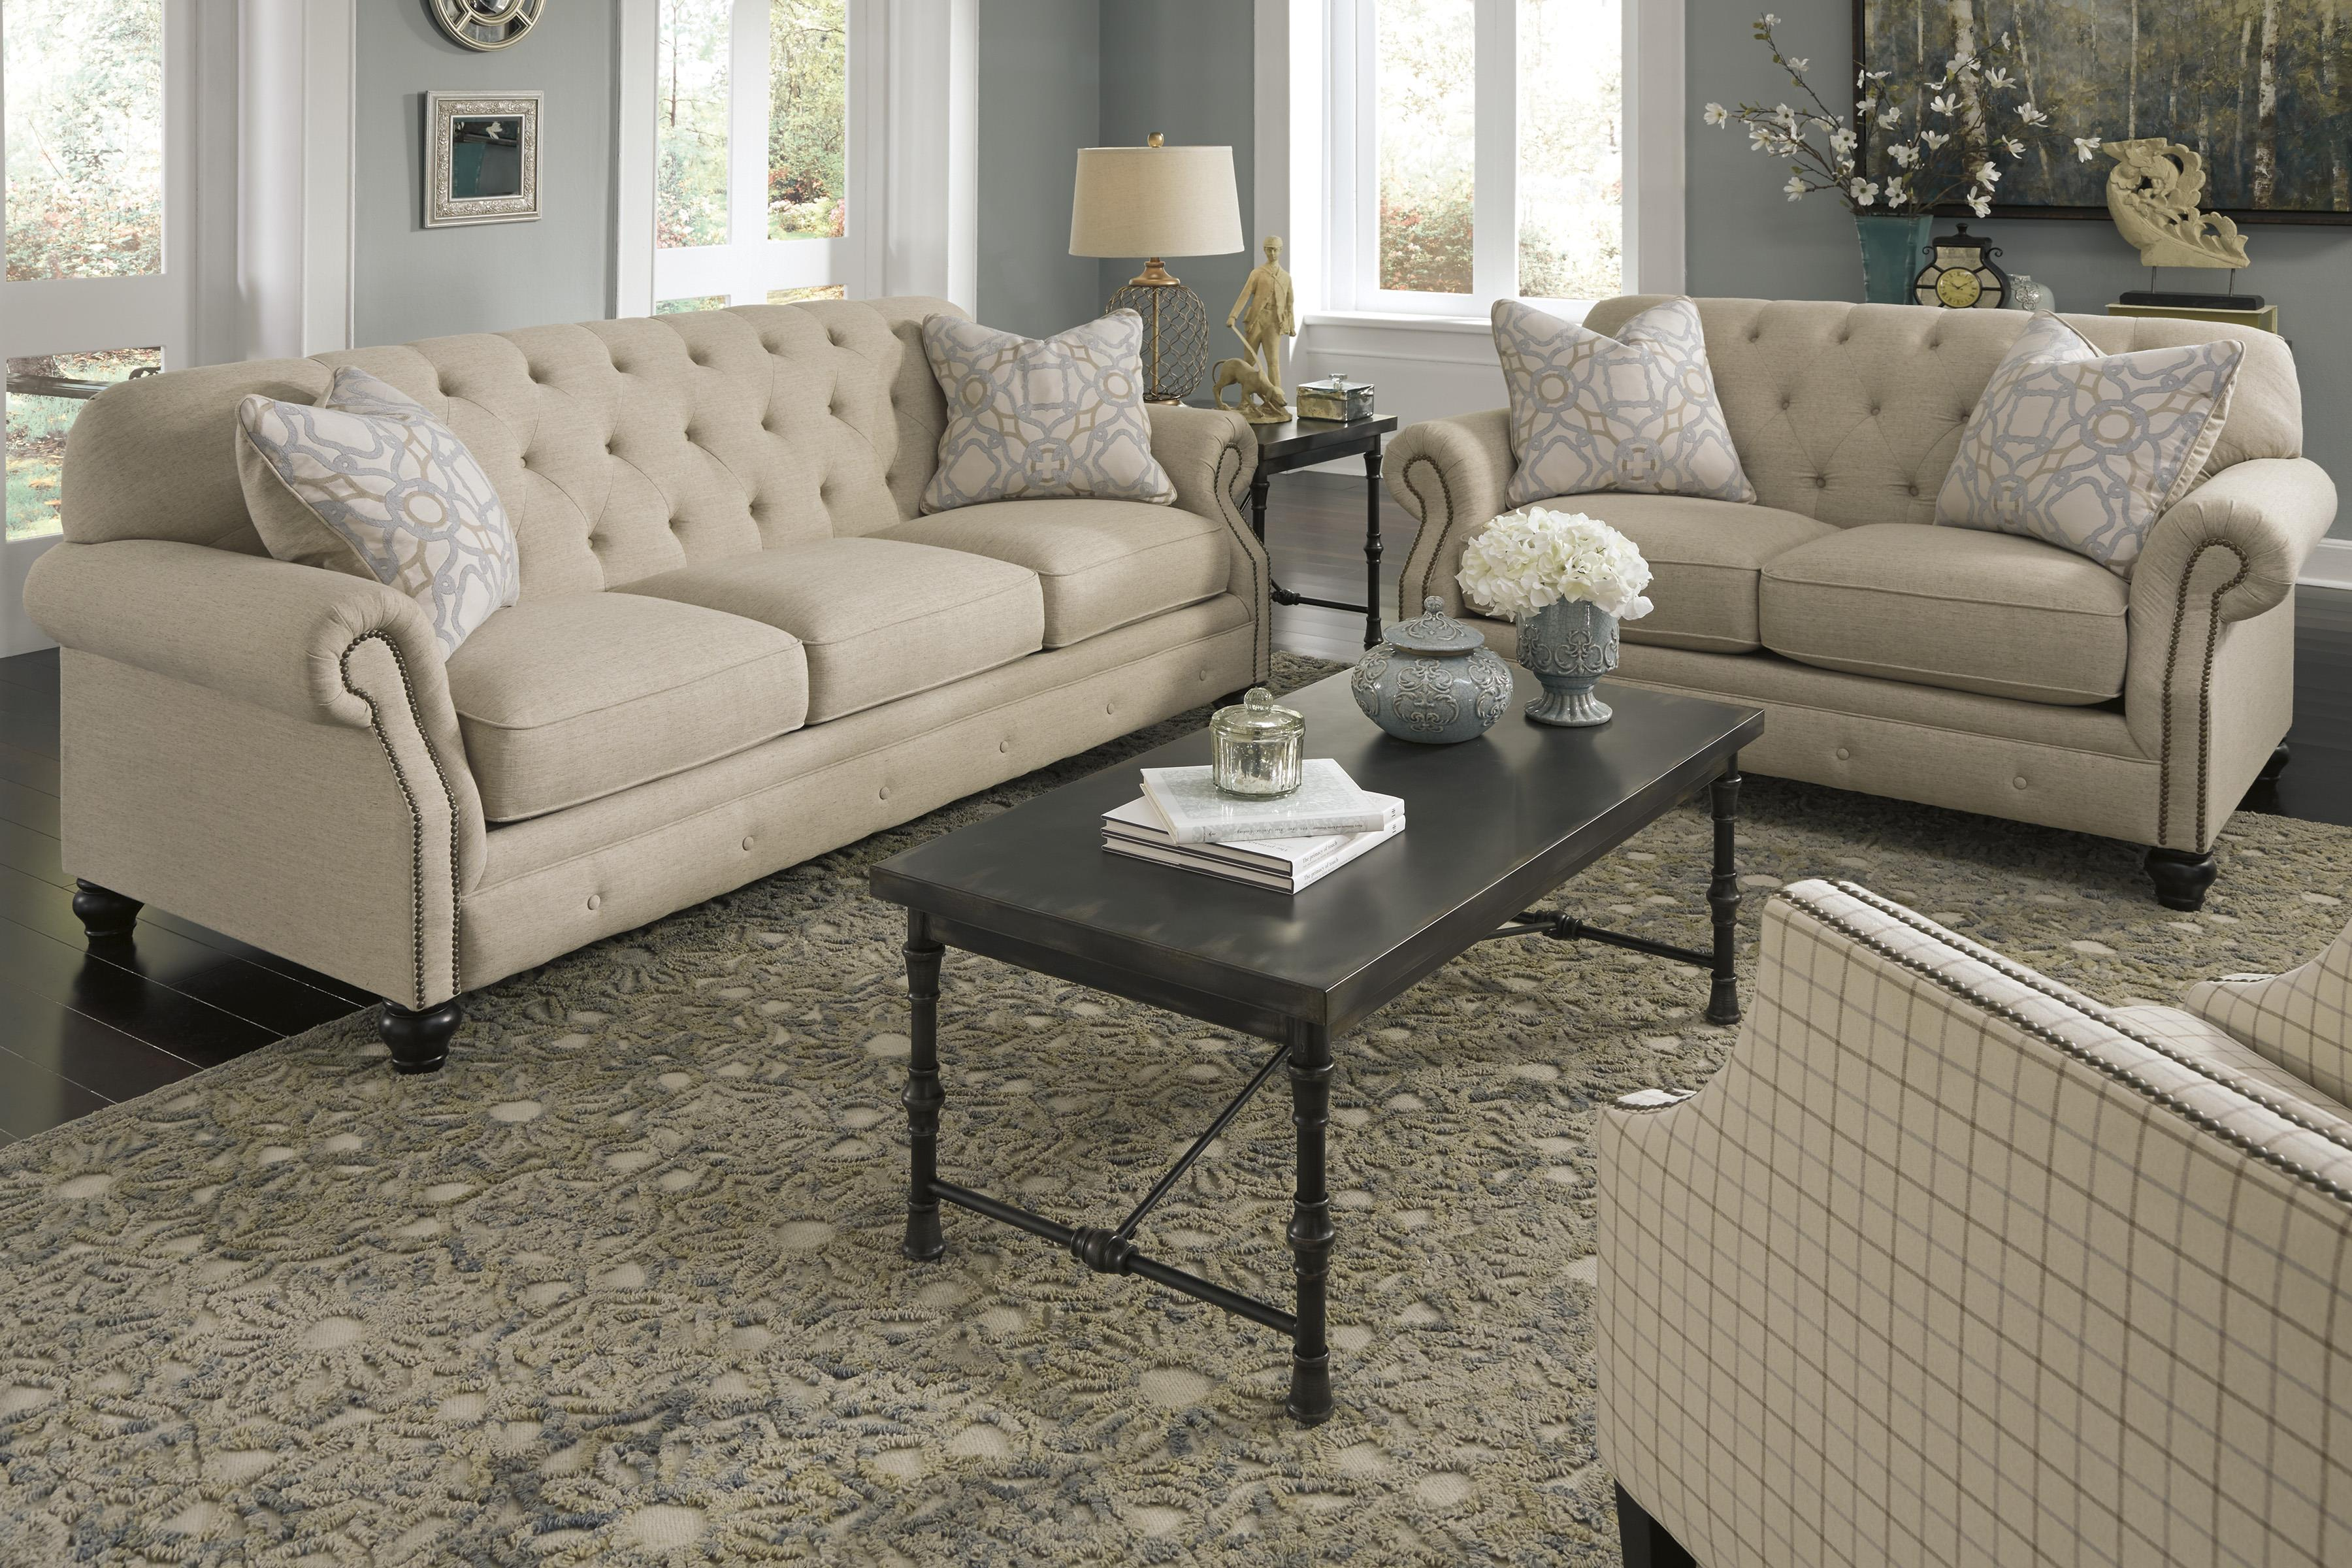 Signature Design by Ashley Kieran Stationary Living Room Group - Item Number: 44000 Living Room Group 3